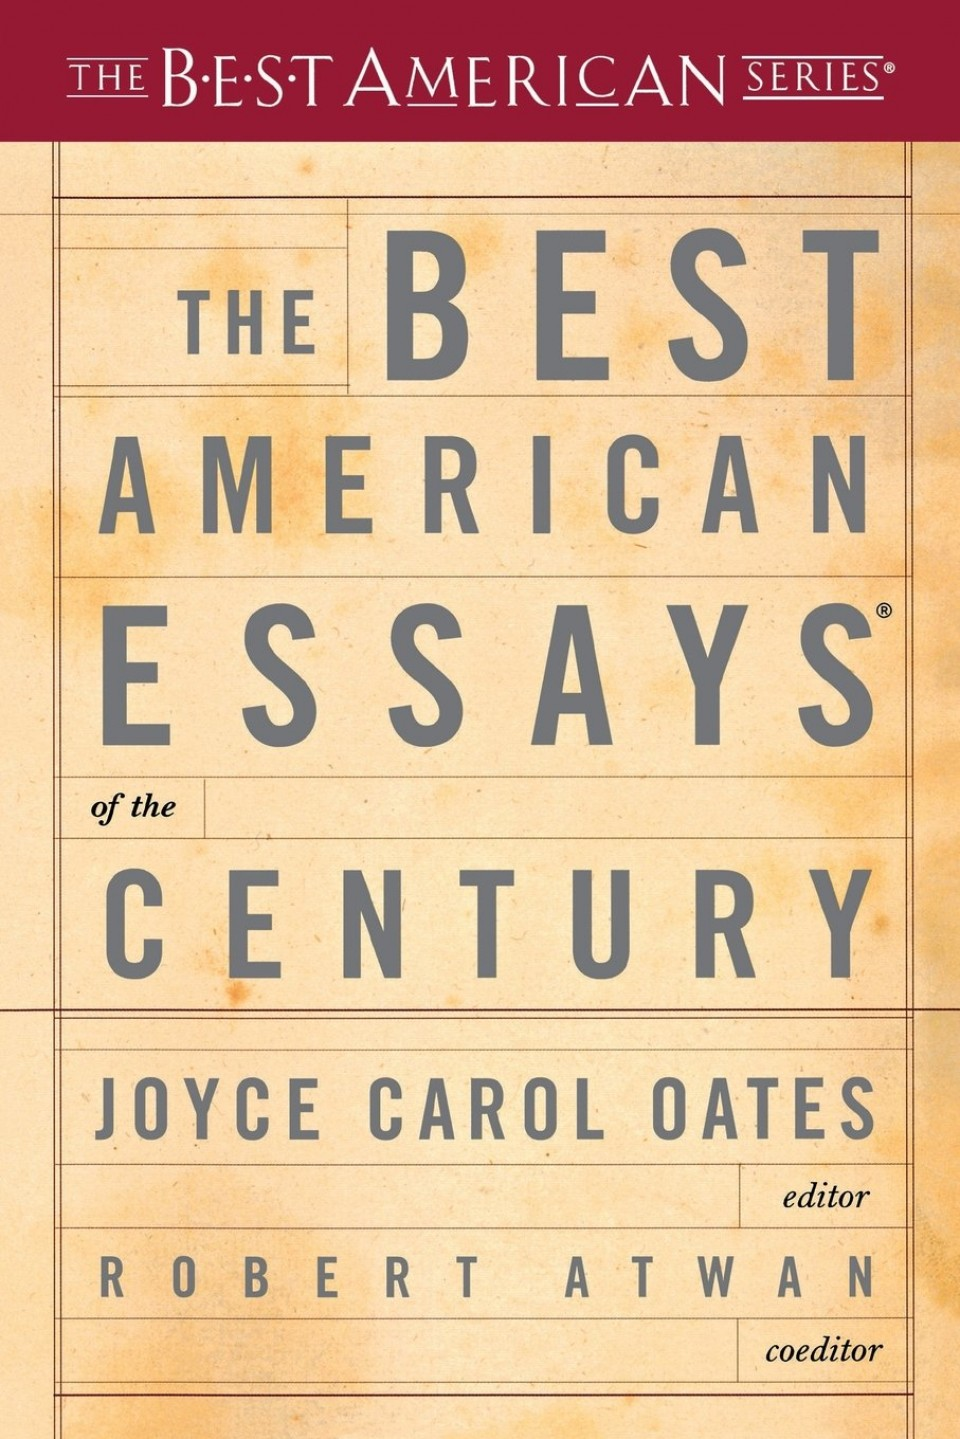 002 The Best American Essays Essay Example Wonderful 2018 Pdf 2017 Table Of Contents 2015 Free 960